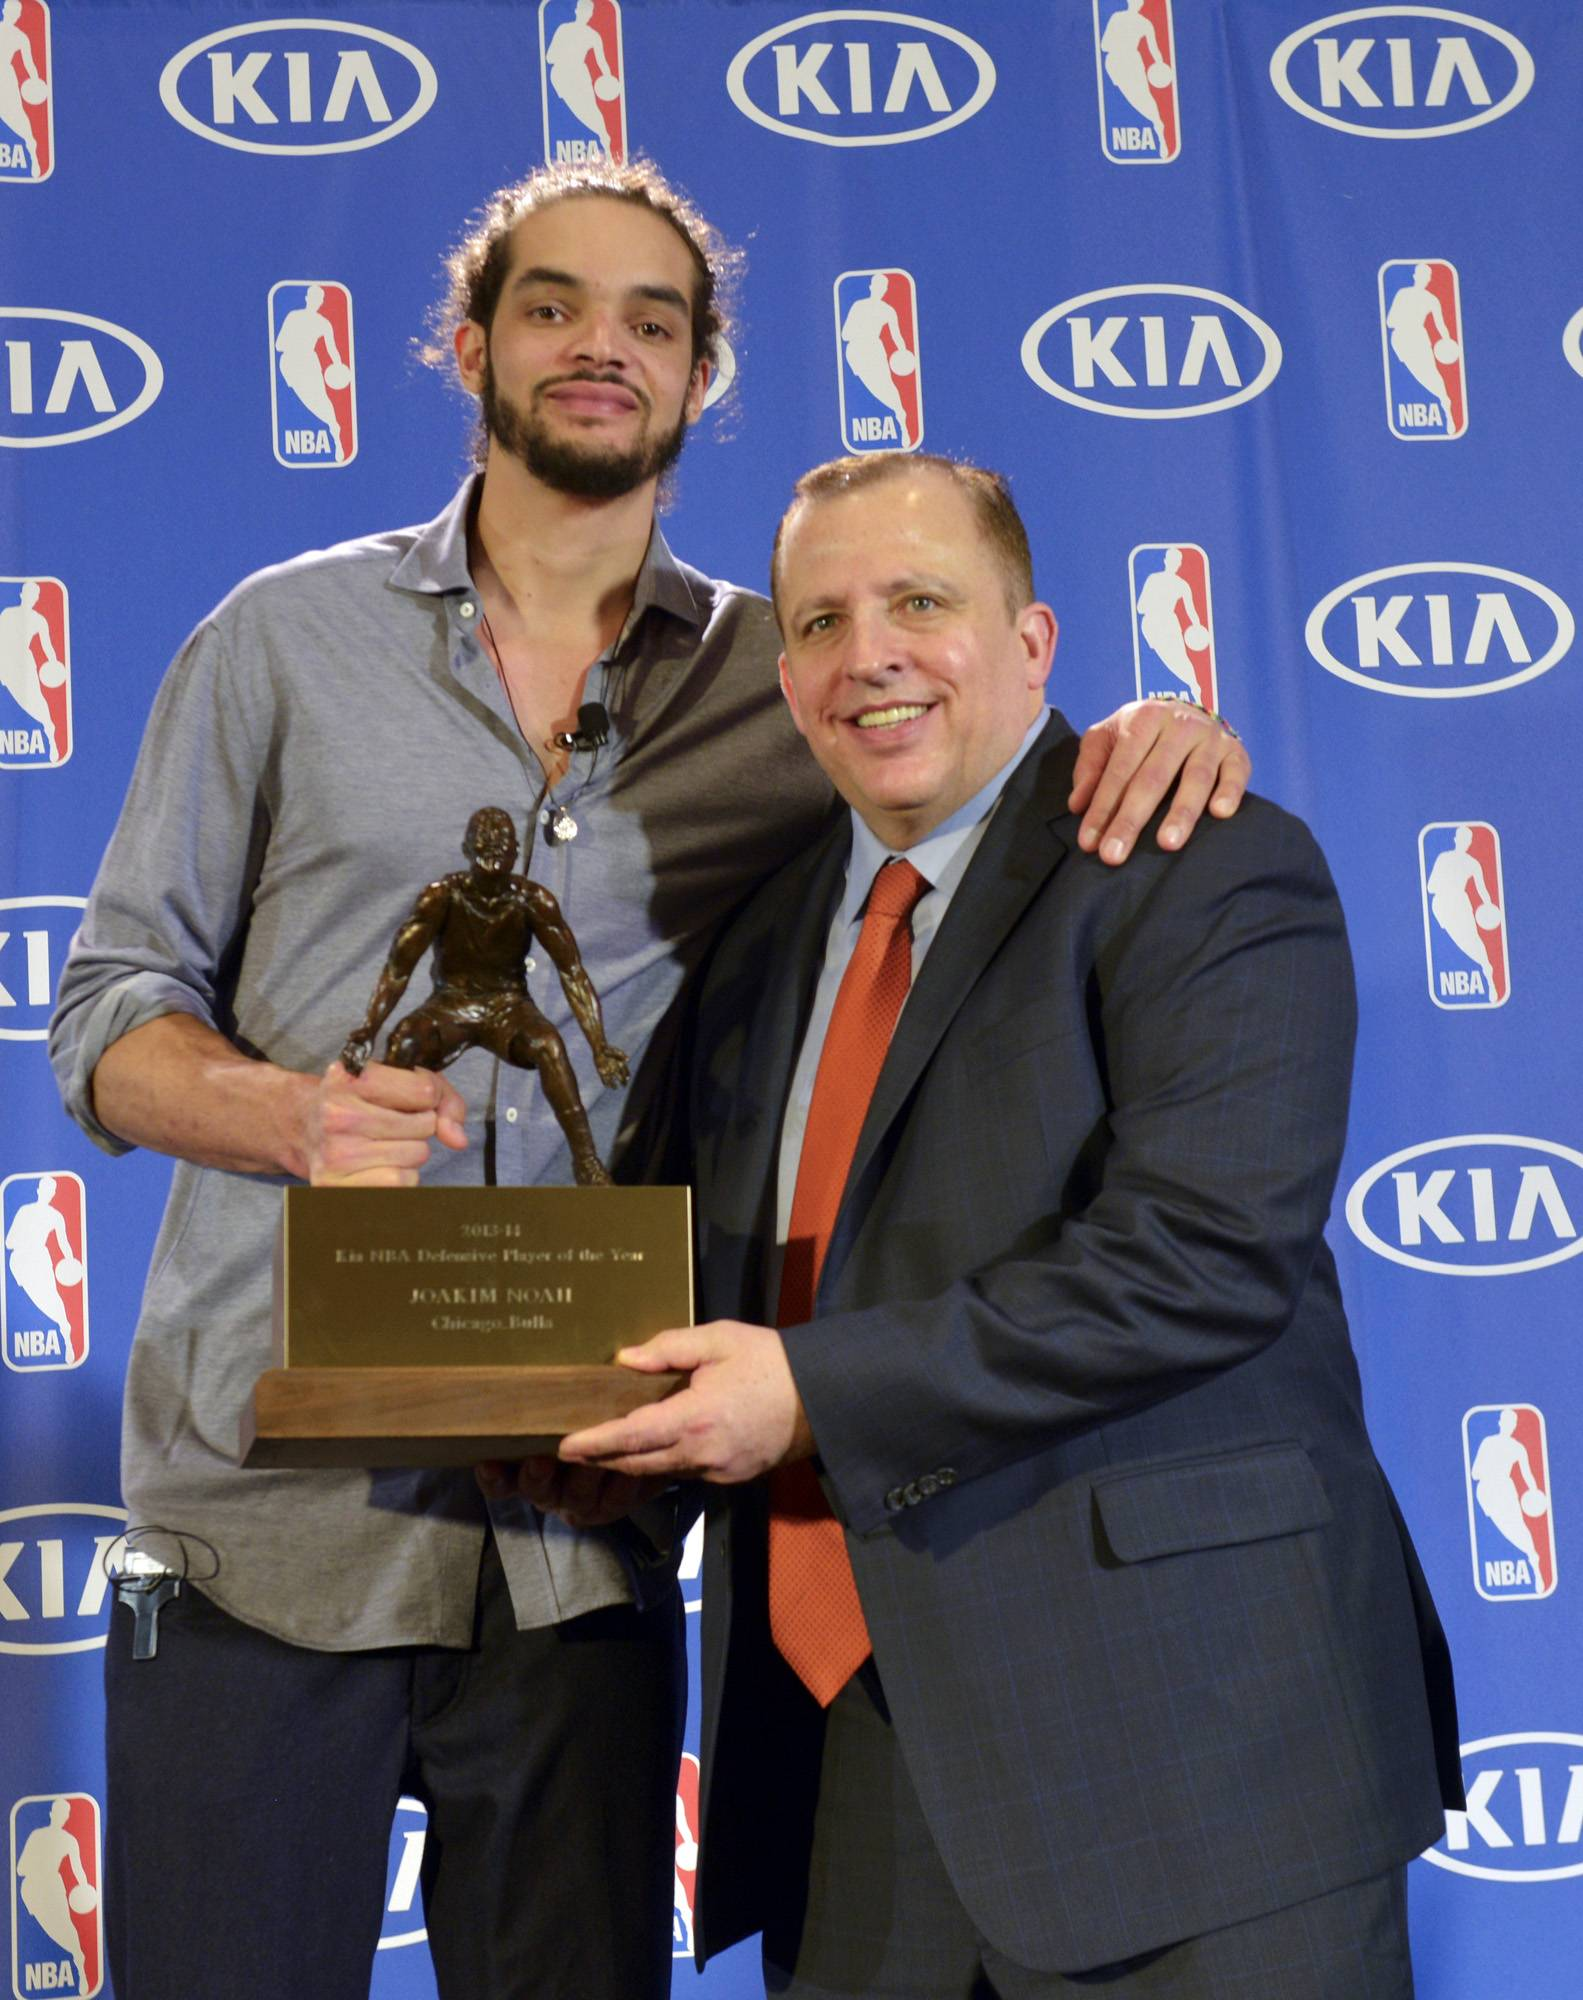 Defensive Player of the Year Joakim Noah: 'This award is a team award'